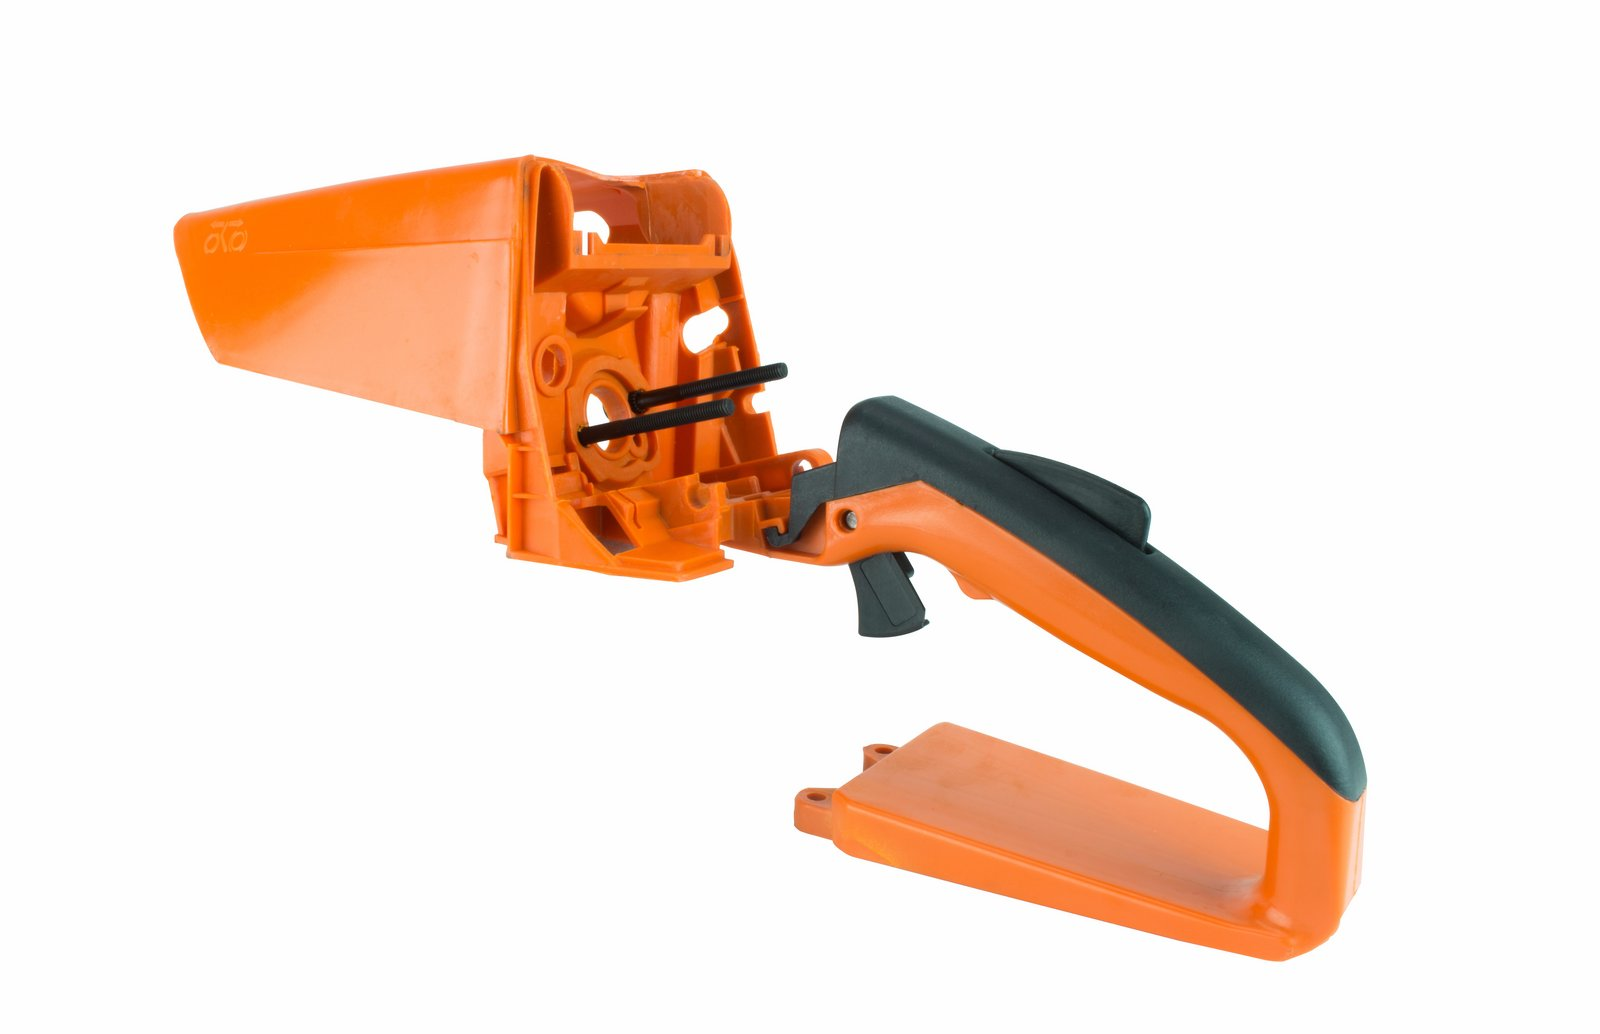 Stihl Chainsaw Ms170 Carburetor Adjustment Ms 441 Diagram 028 025 Eope 1123 790 1013 Handle Bar Housing Cylinder Cover Assembly Trigger Fits